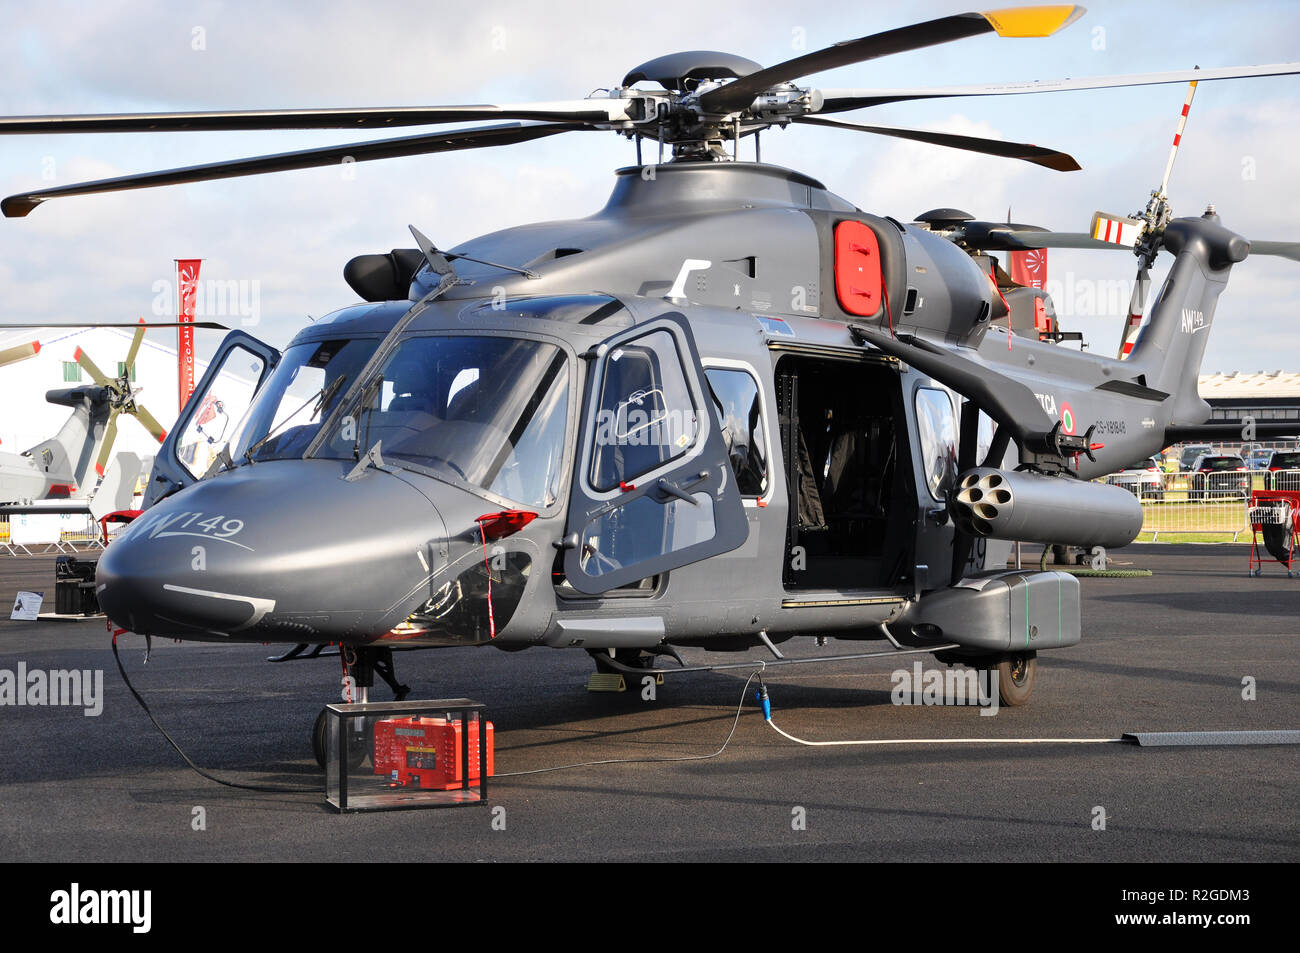 AgustaWestland AW149 is a medium-lift military helicopter developed by AgustaWestland, now Leonardo, from the AW139. At Farnborough trade show - Stock Image